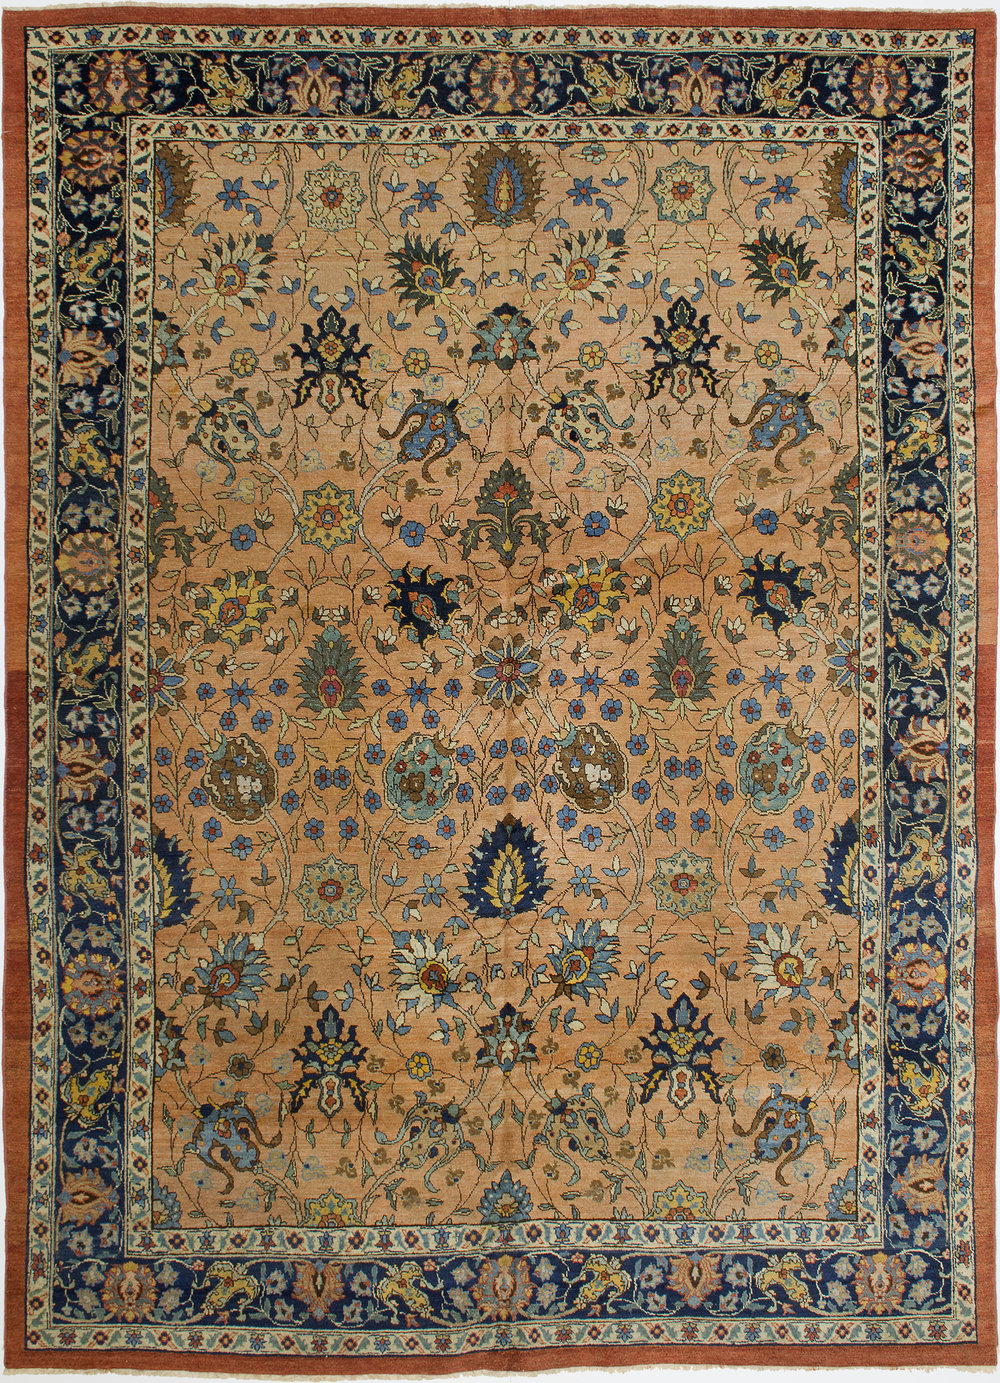 "Tabriz Carpet 10' 11"" x 8' 2"""